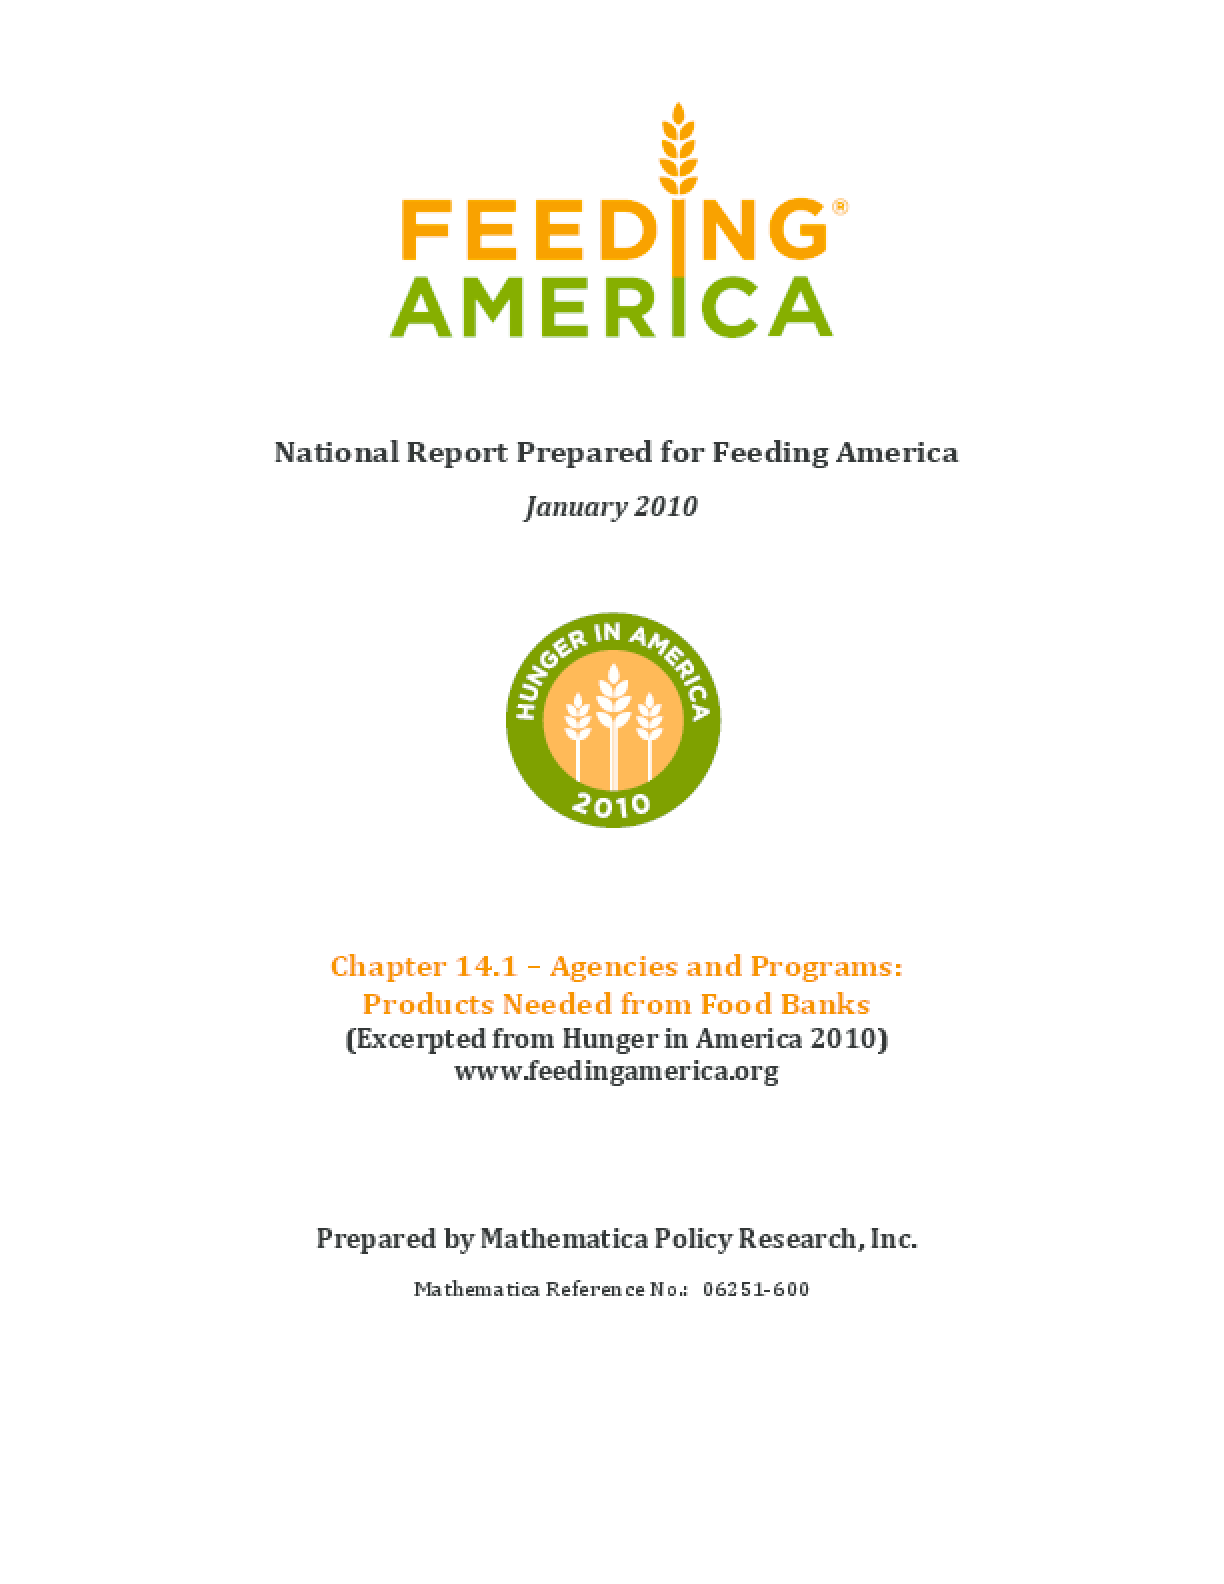 Feeding America Agencies and Food Programs: Products Needed from Food Banks